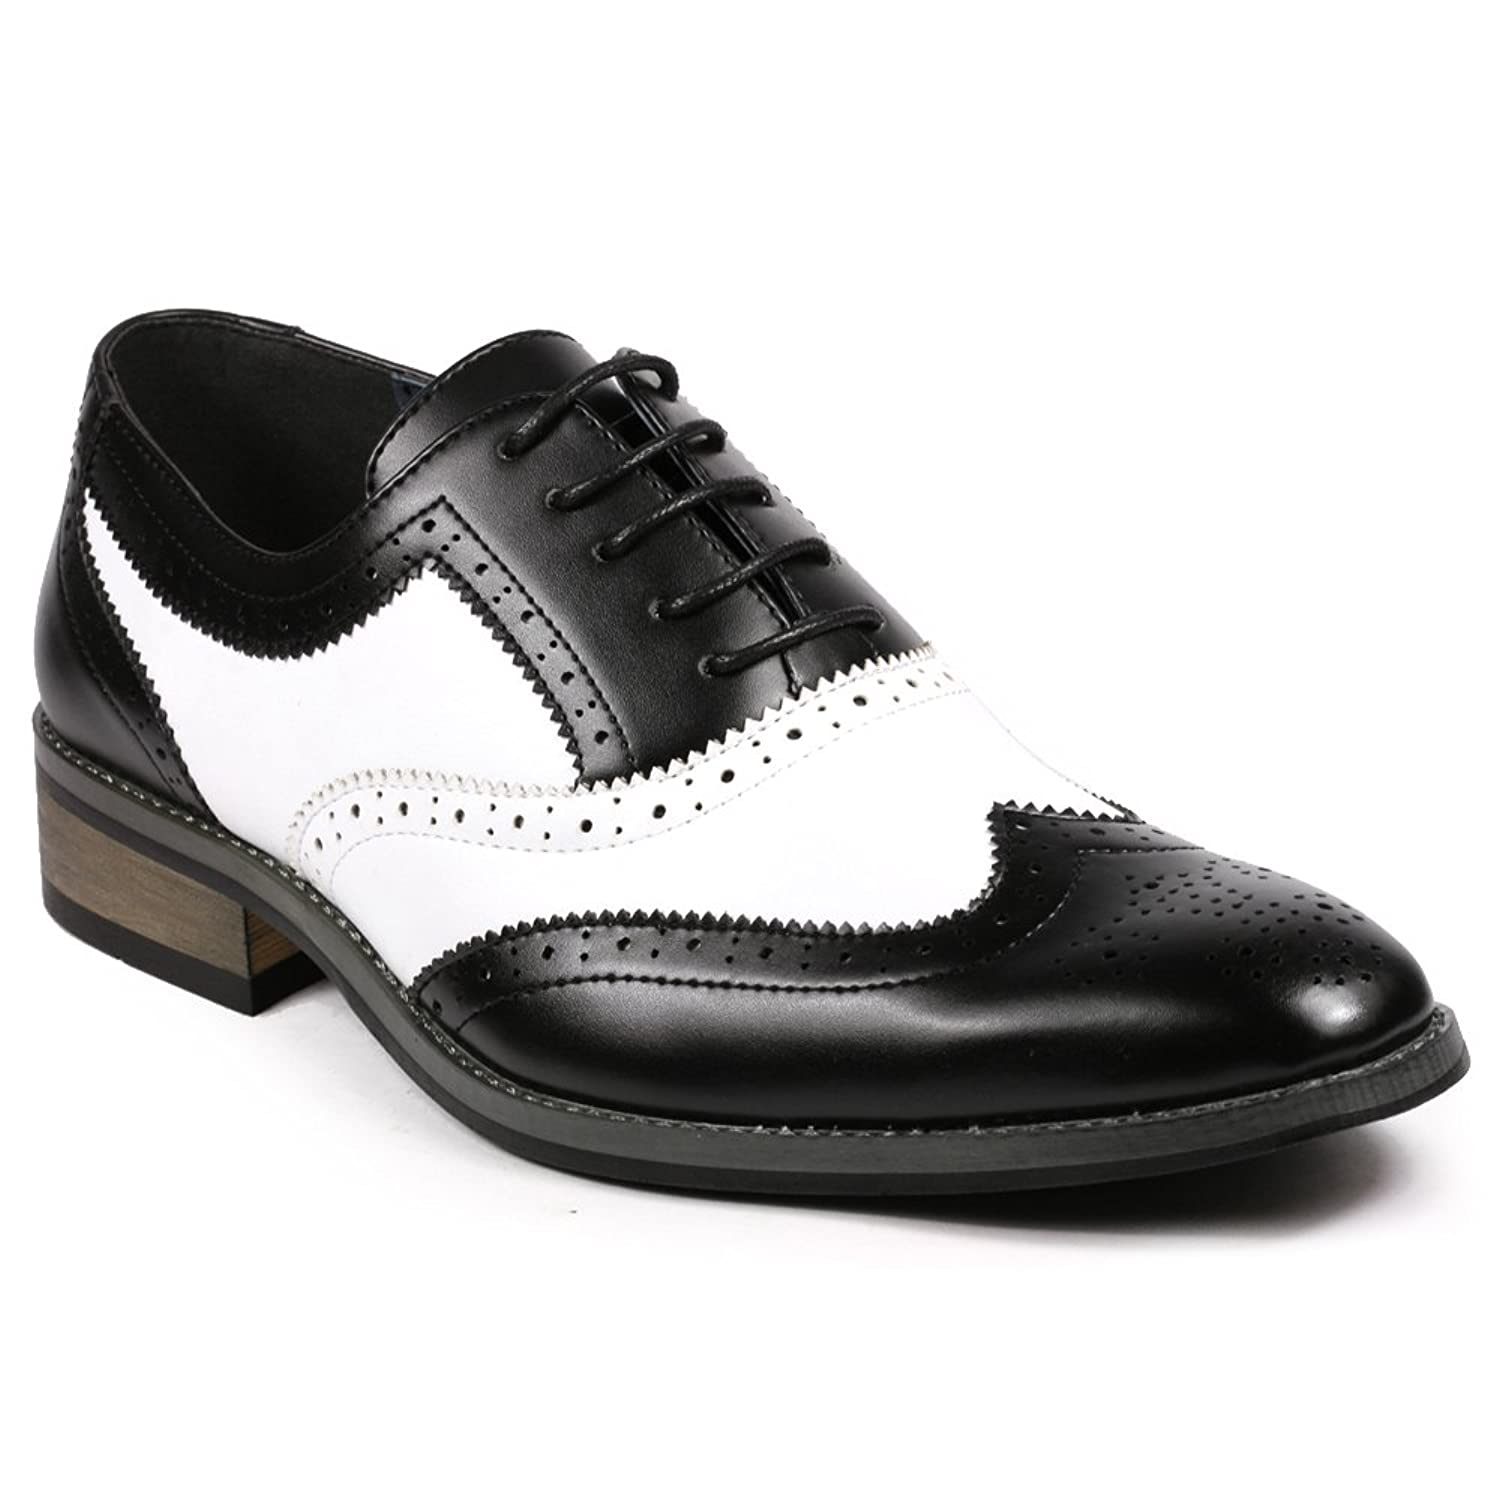 Men's 1950s Shoes Styles- Classics to Saddles to Rockabilly UV Signature  PA002 Mens Two Tone